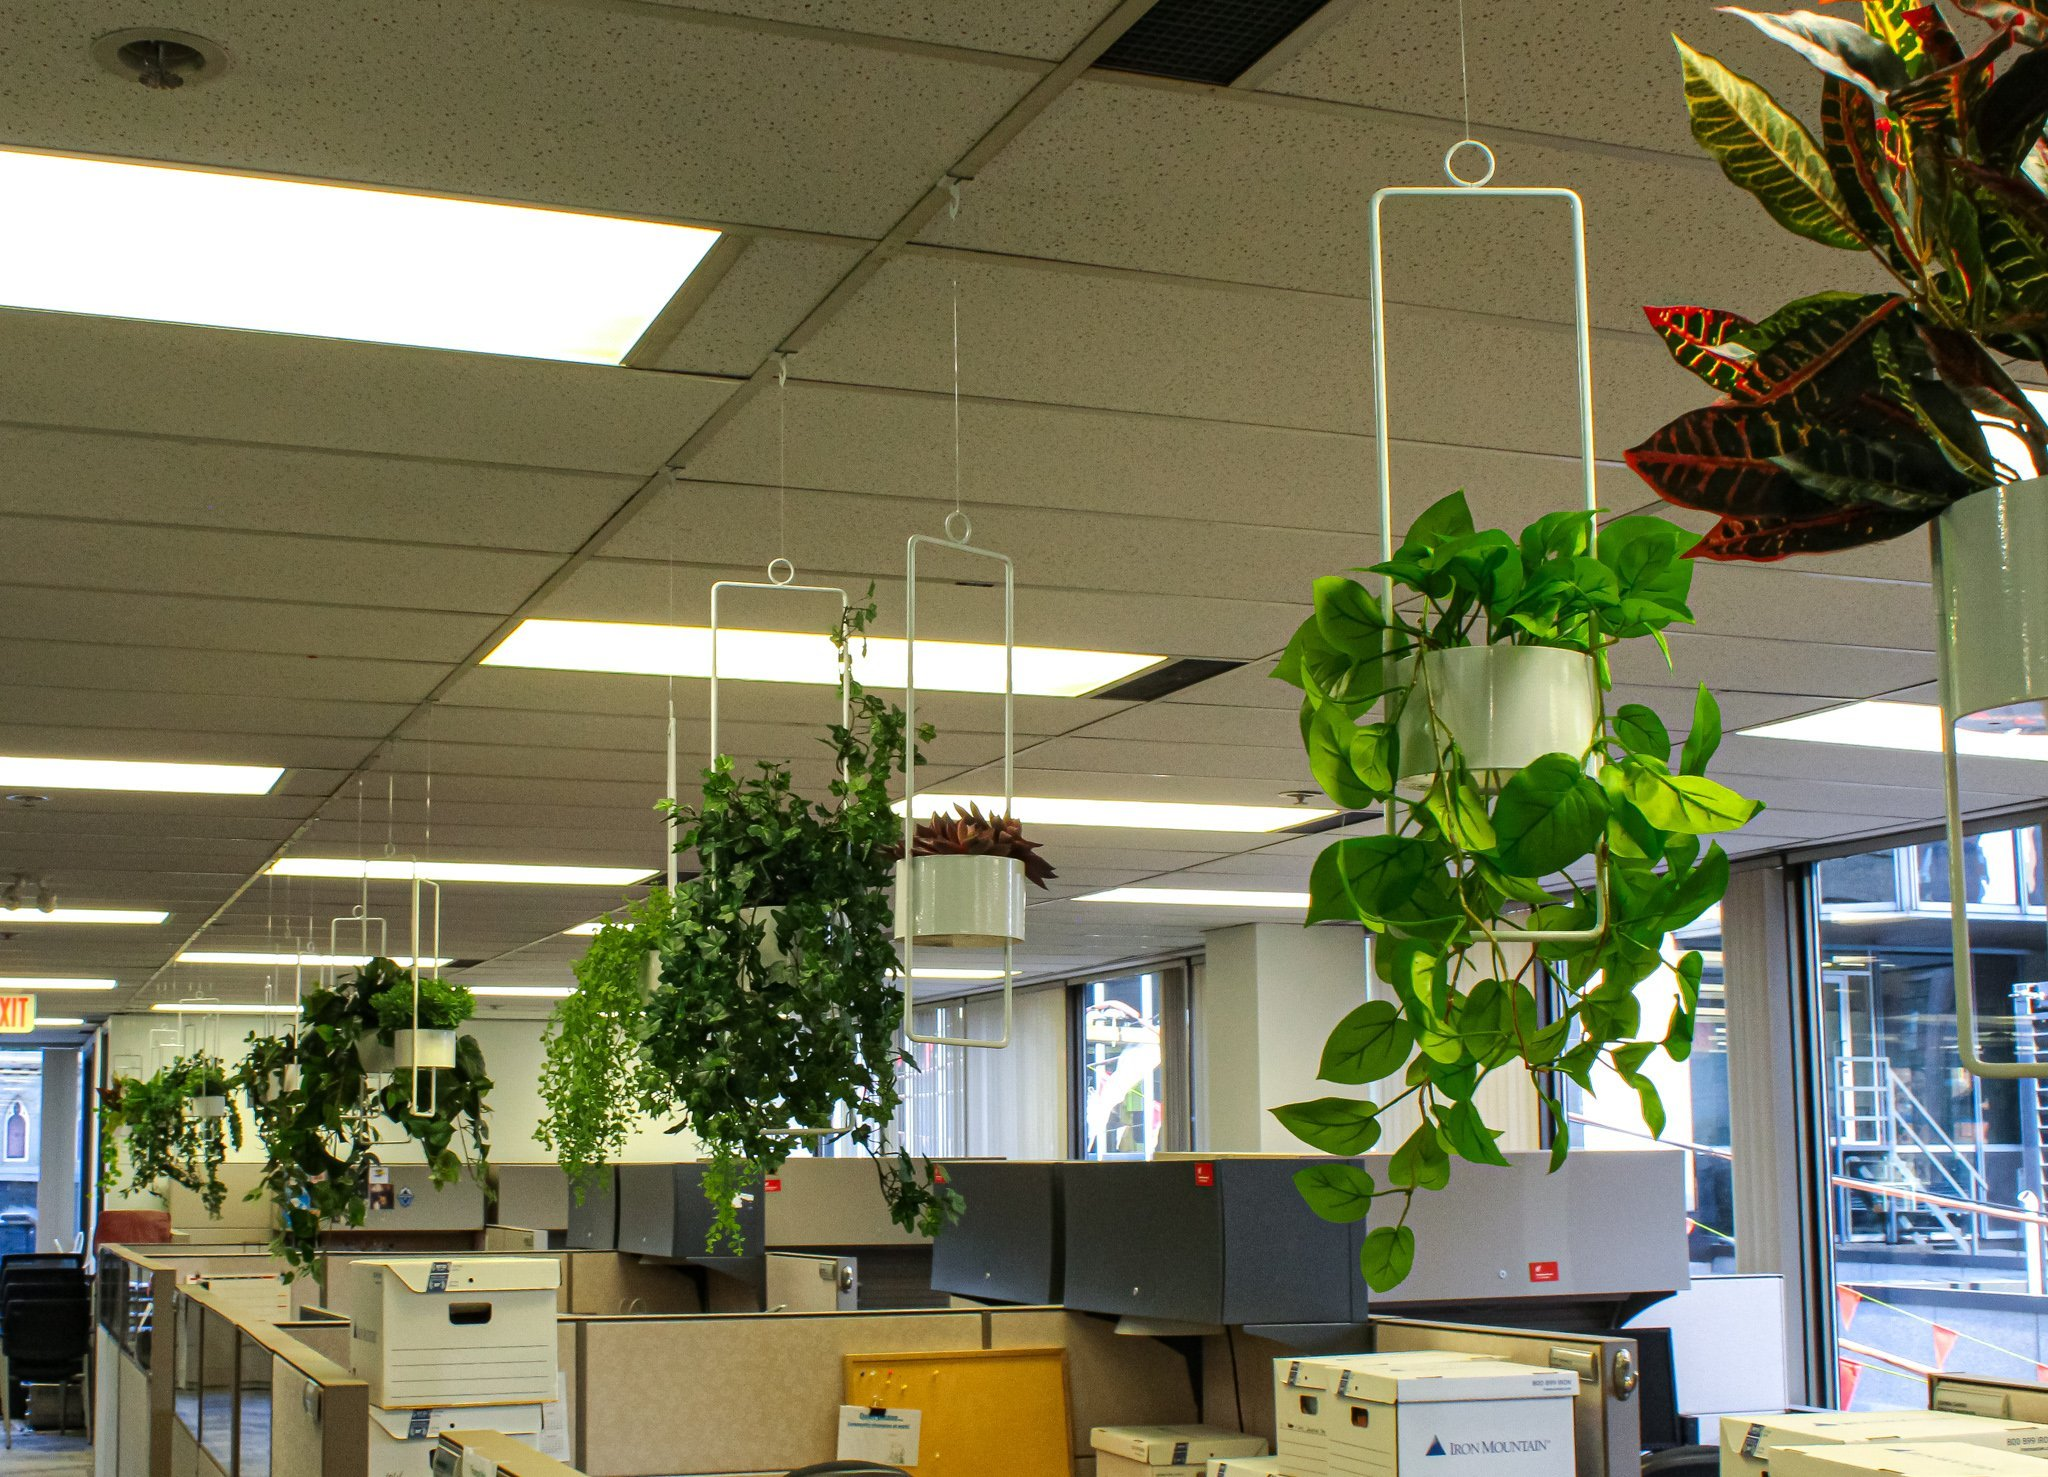 Hanging white planters in two sizes, filled with various artificial greenery, hanging over cubicles for office decor.